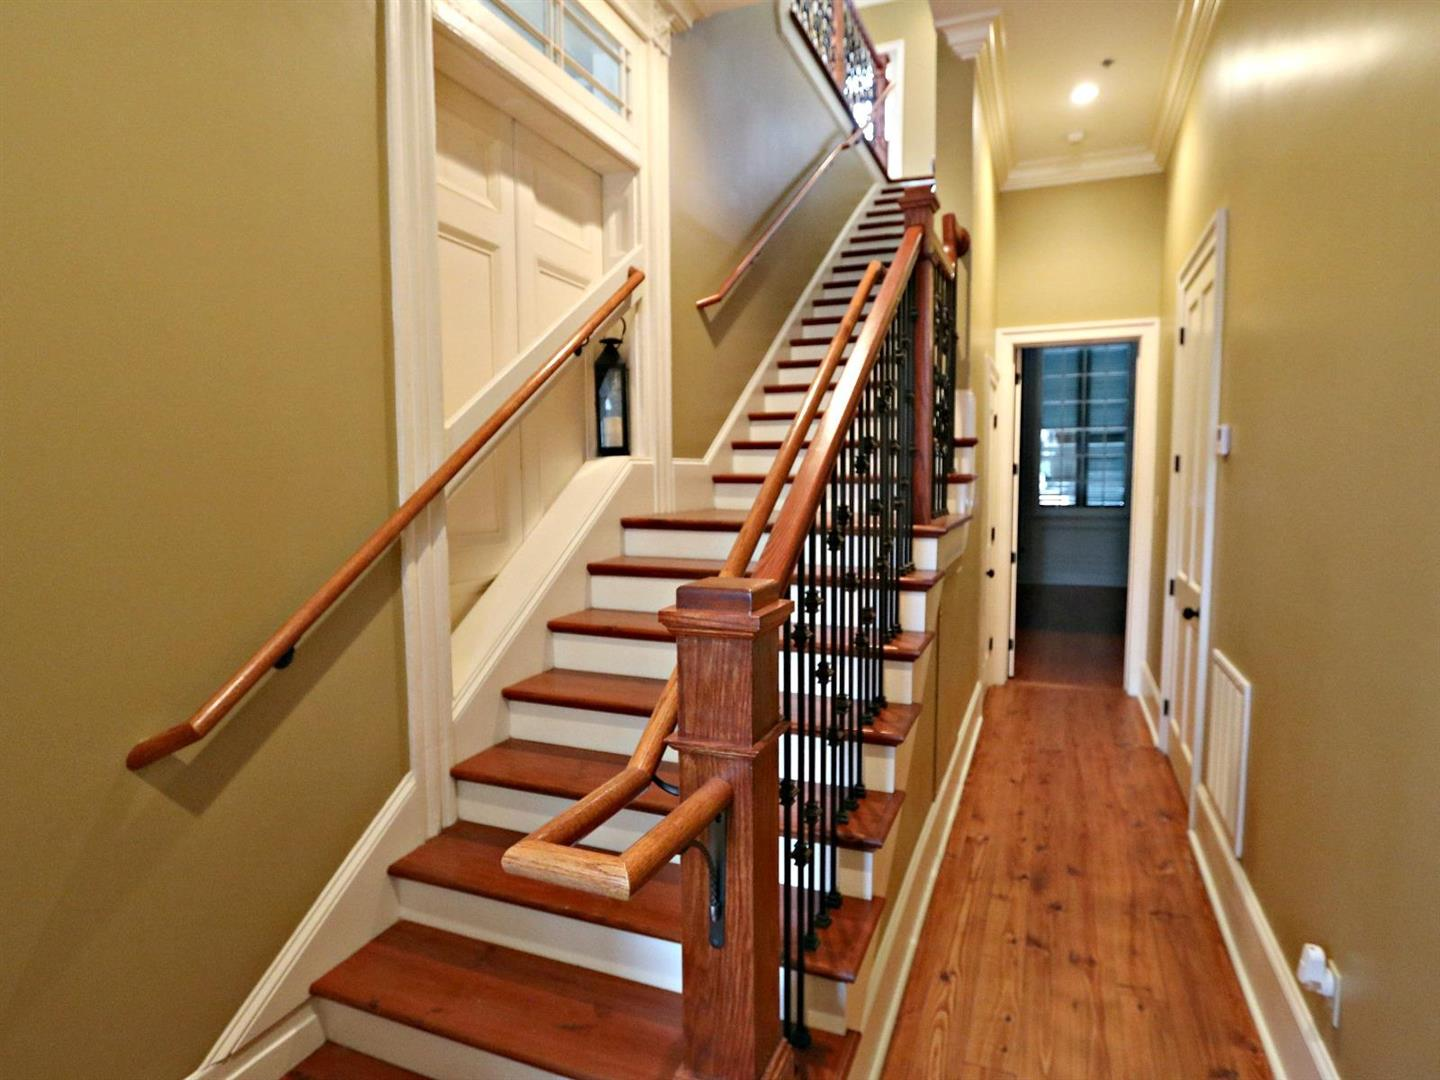 1225BourbonSt.CondoStairs.jpg